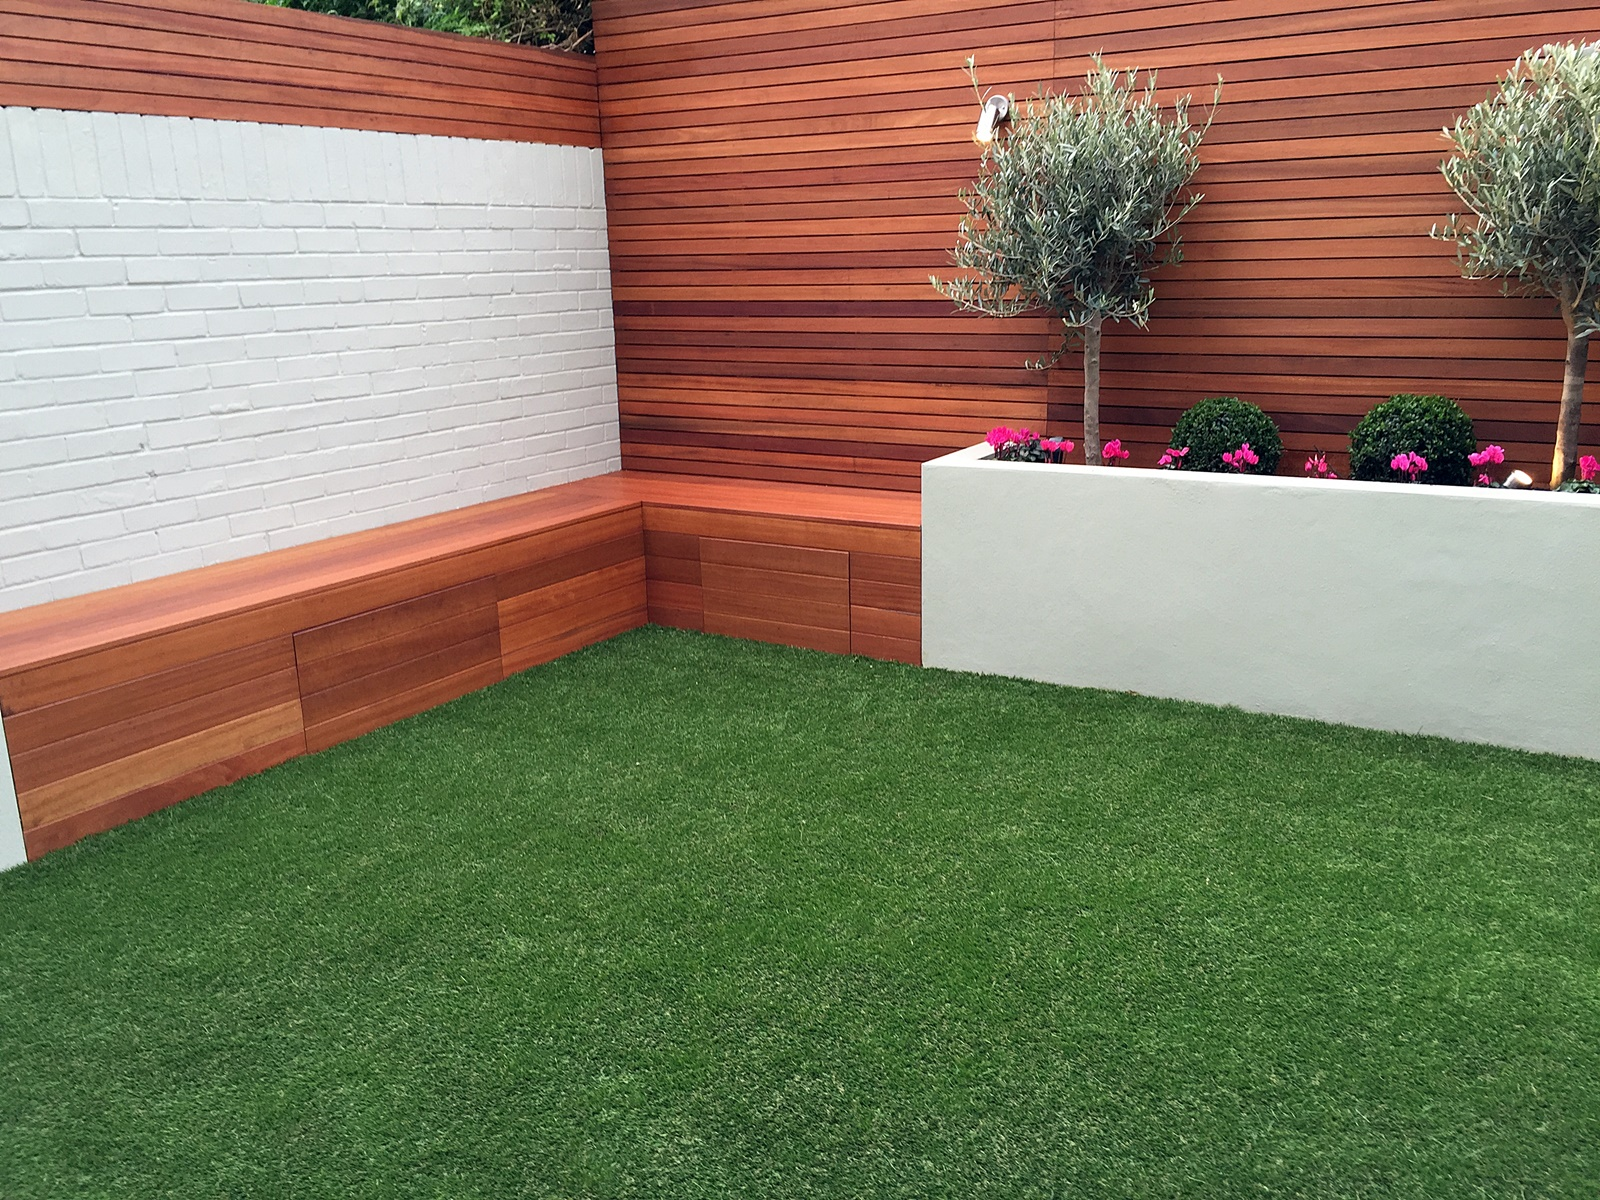 Simple modern court yard garden designer battersea fulham for Small modern house garden design